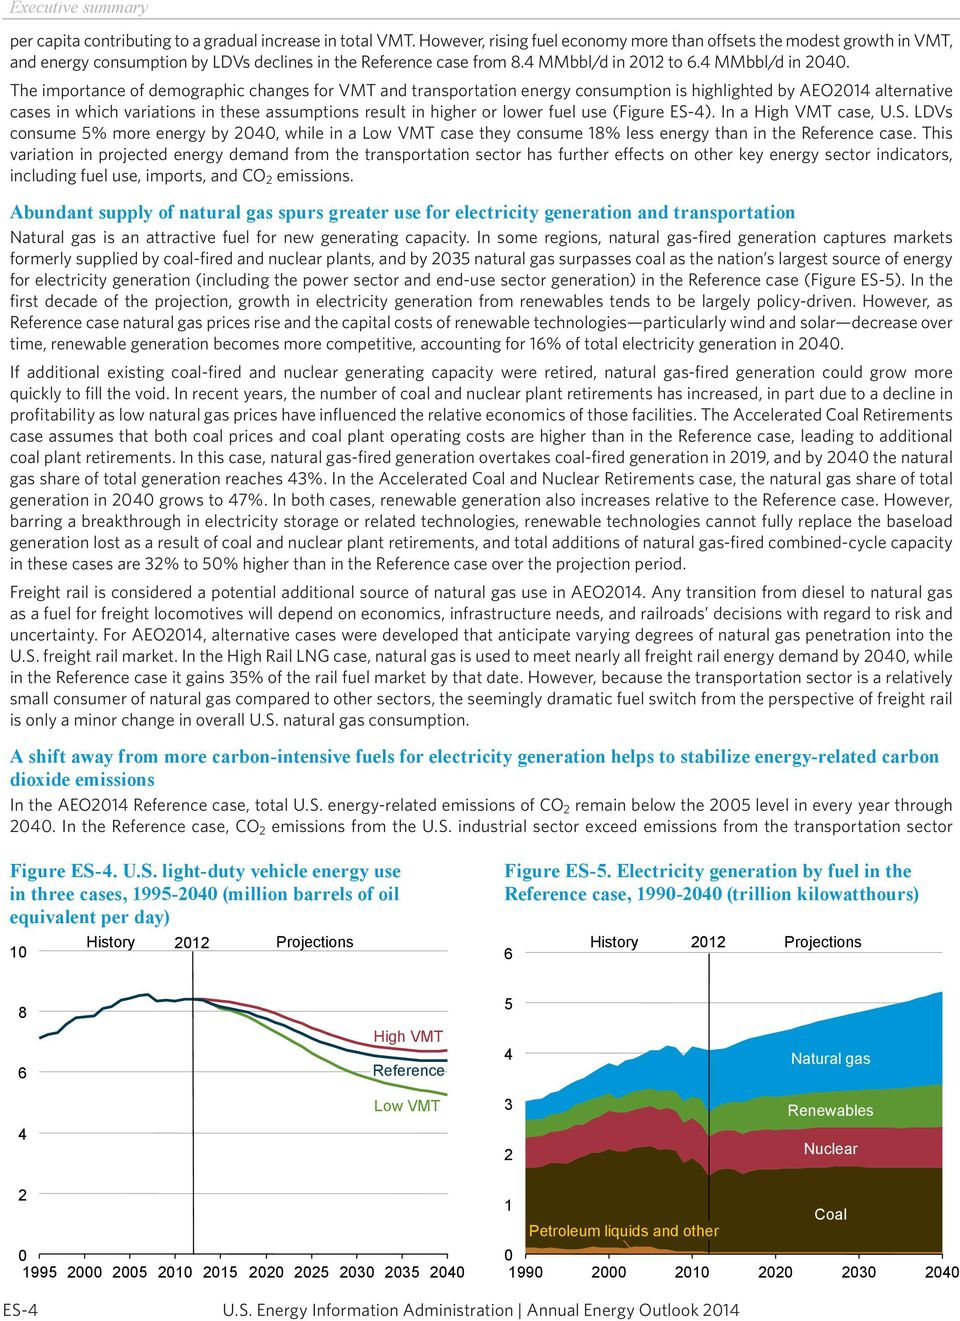 The importance of demographic changes for VMT and transportation energy consumption is highlighted by AEO2014 alternative cases in which variations in these assumptions result in higher or lower fuel